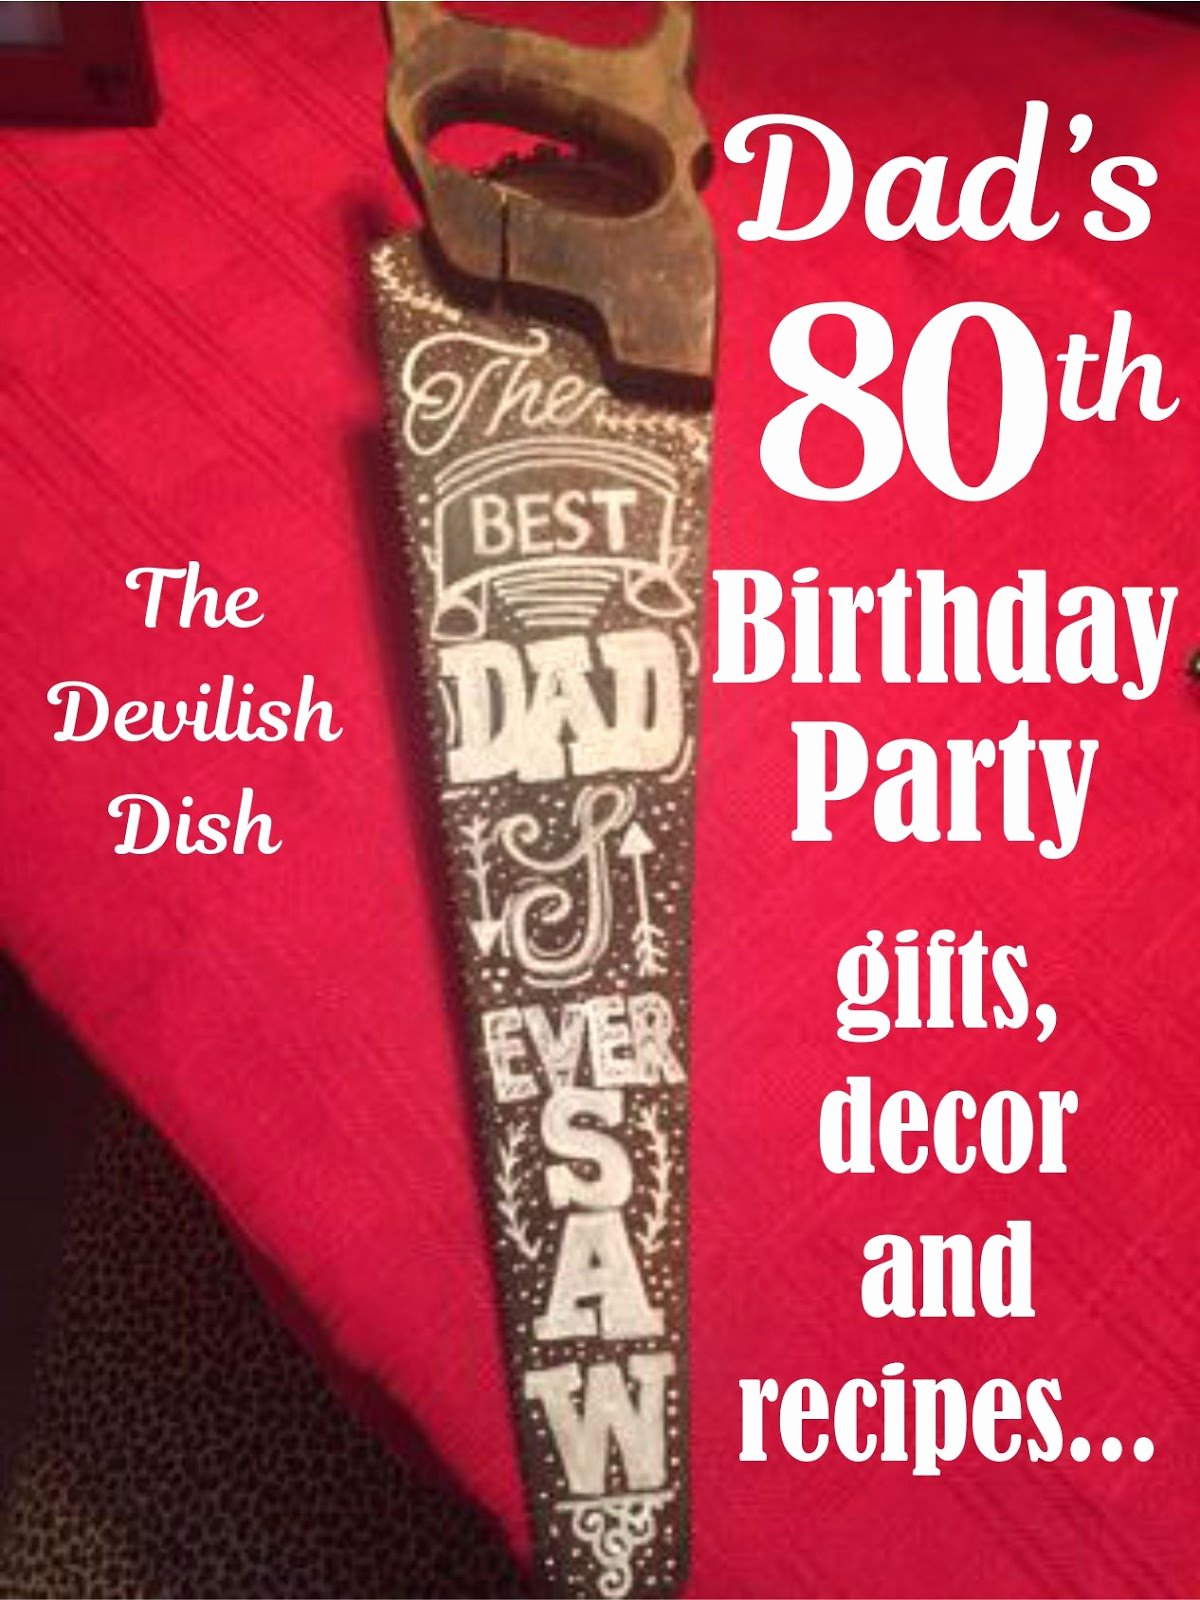 80th Birthday Decoration Ideas for Dad Unique the Devilish Dish Dad S 80th Birthday Party with Gifts